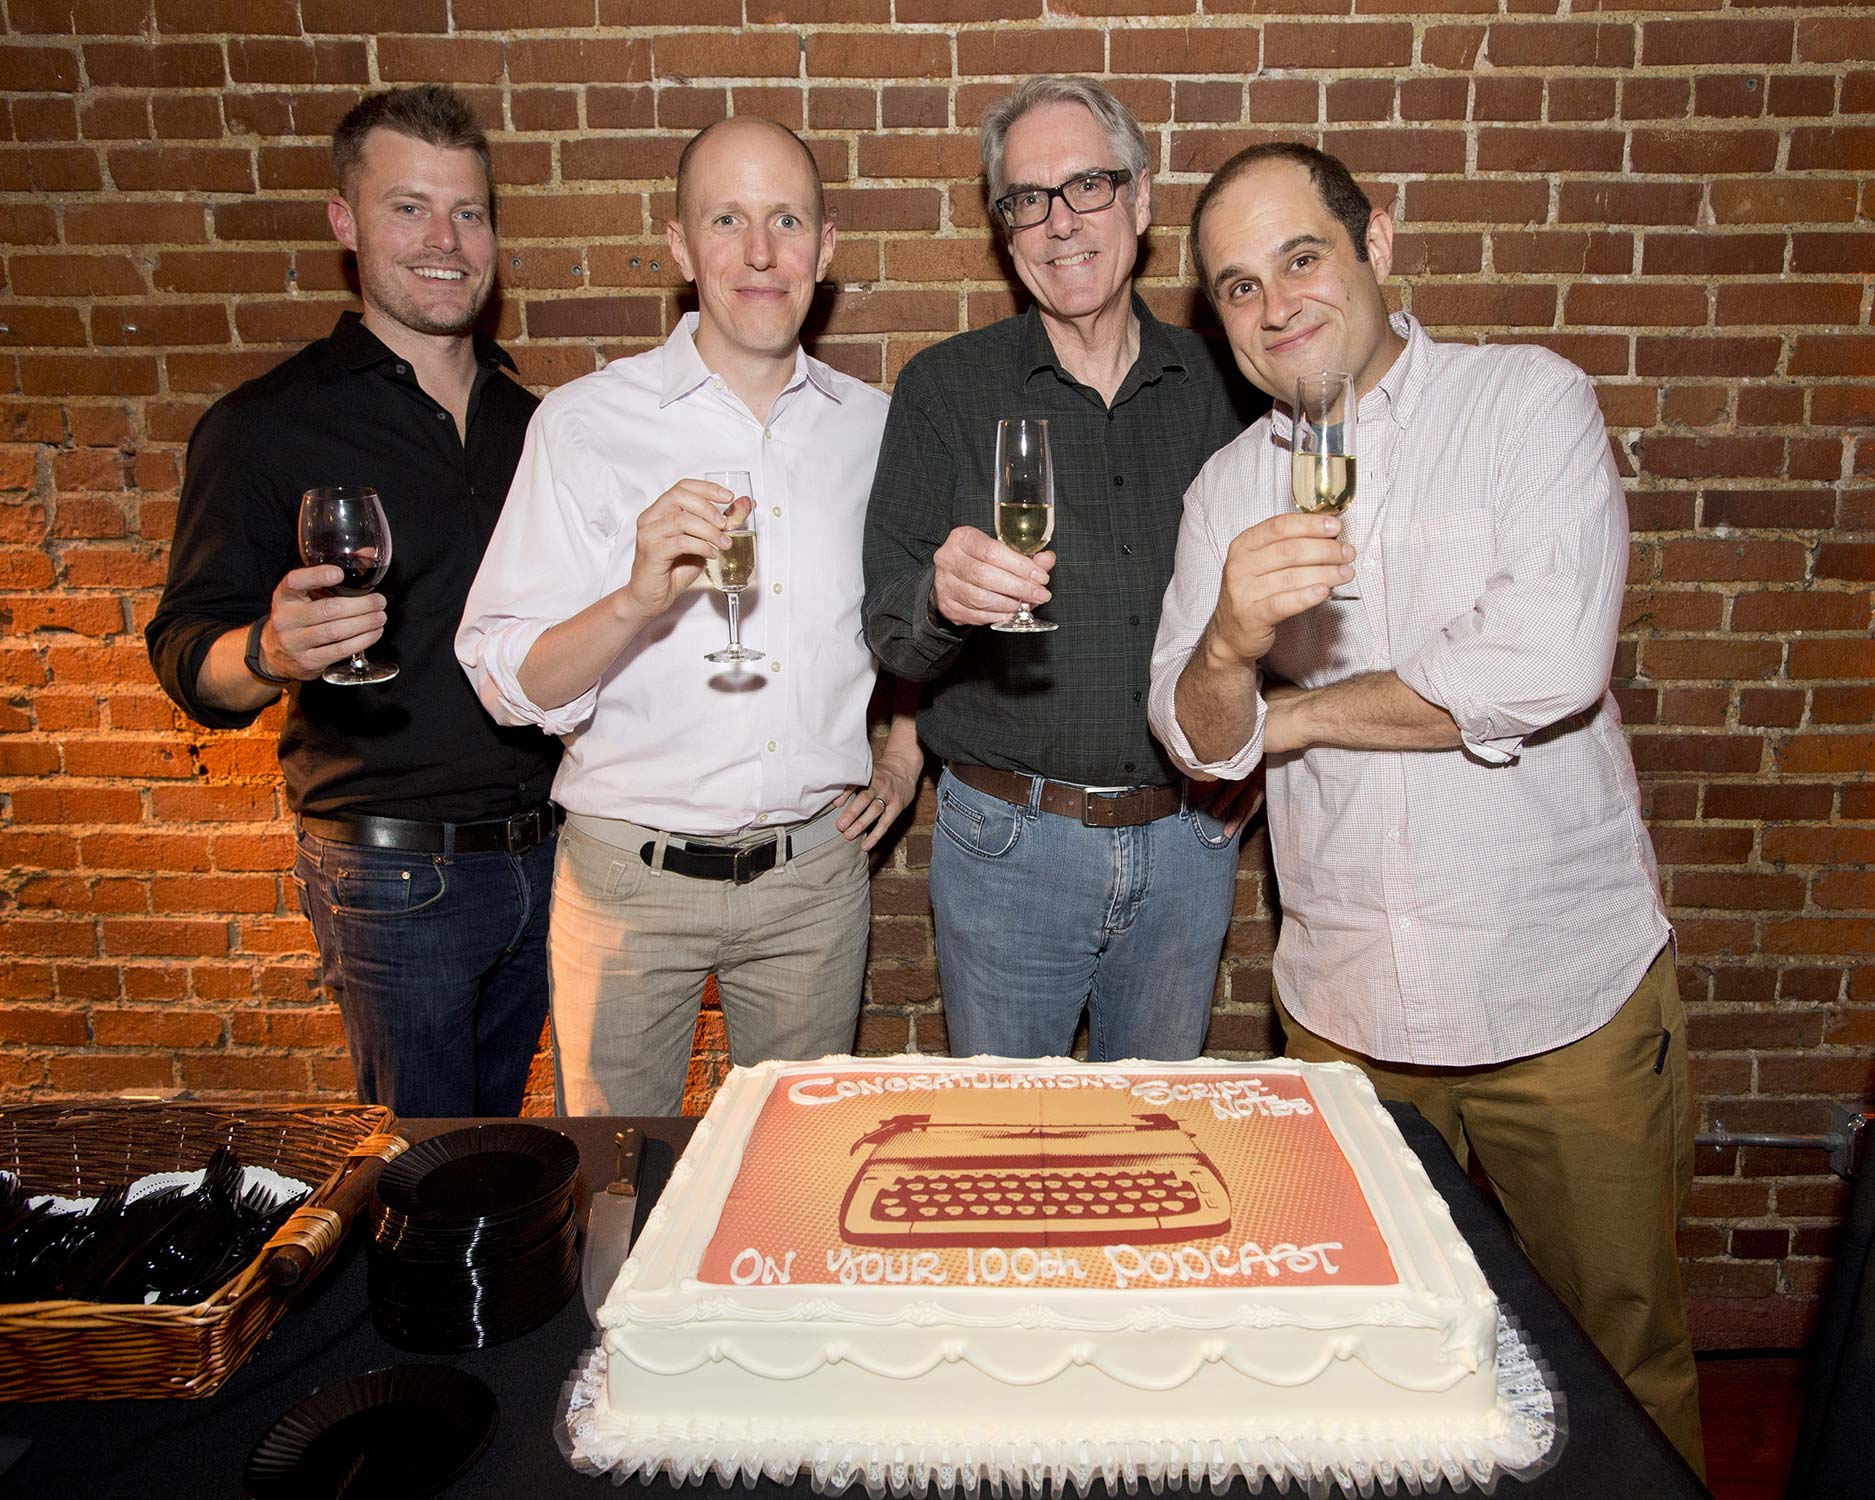 Pictured (left to right) screenwriter Rawson Thurber, co-host John August, Director of the Academy Nicholl Fellowships Greg Beal and co-host Craig Mazin.